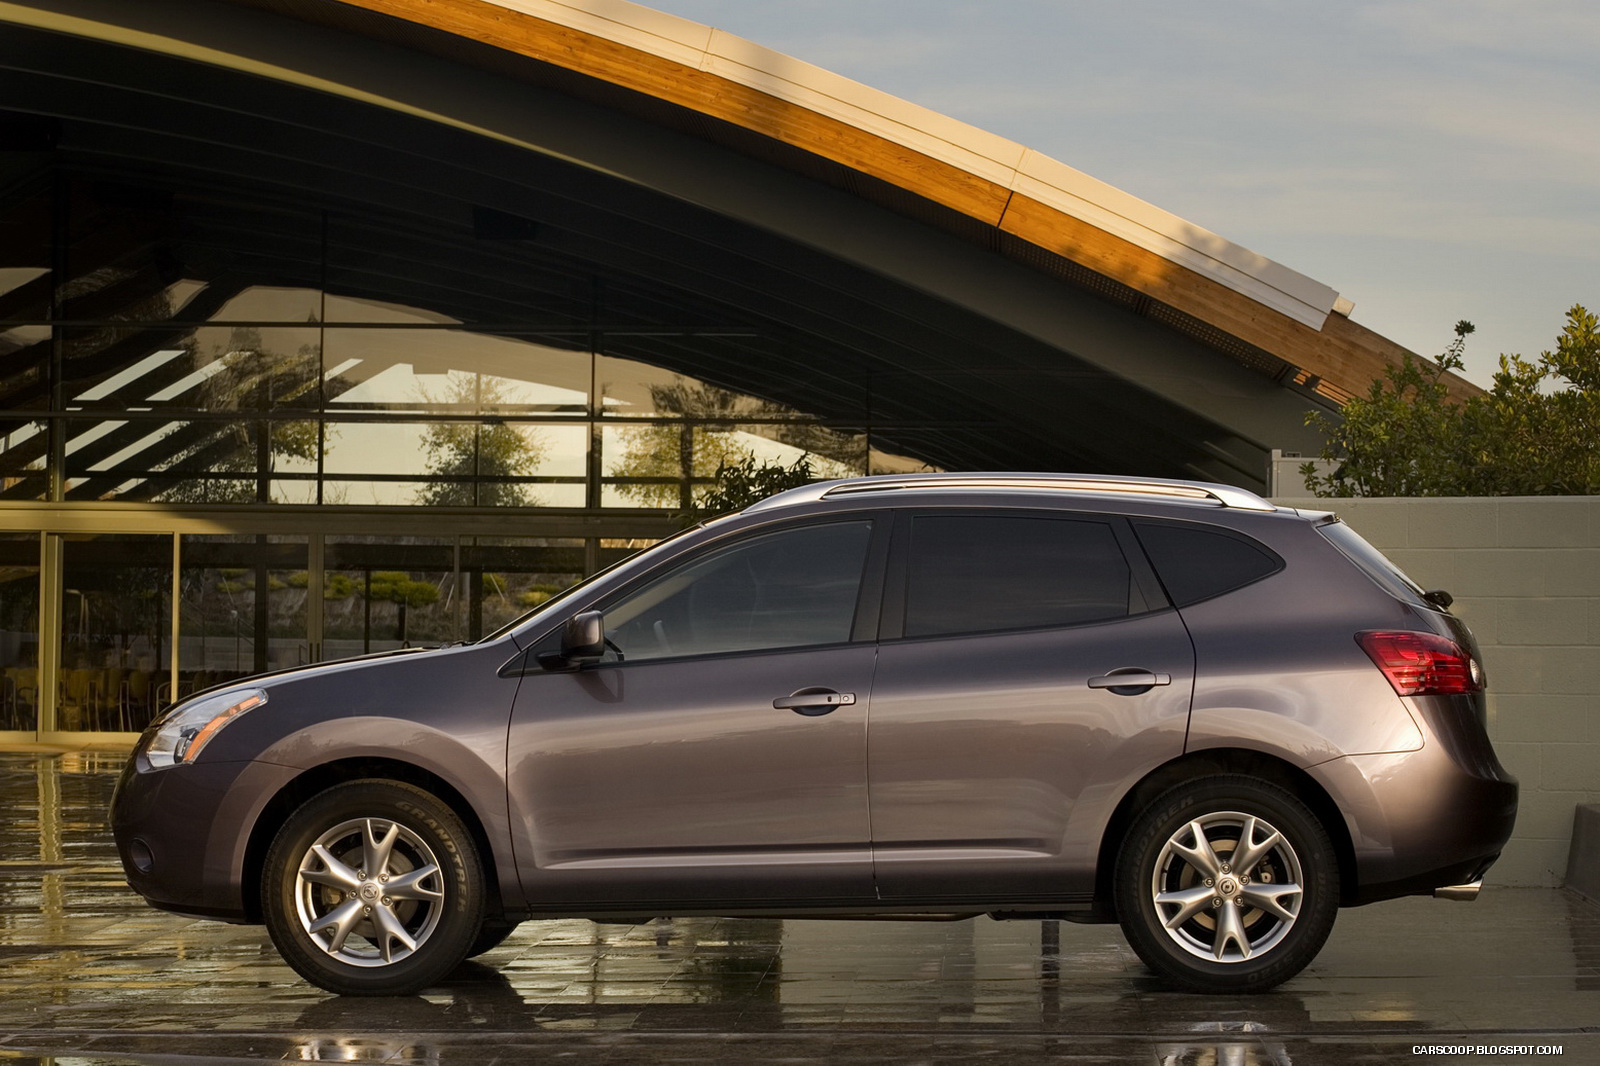 Nissan Rogue S AWD